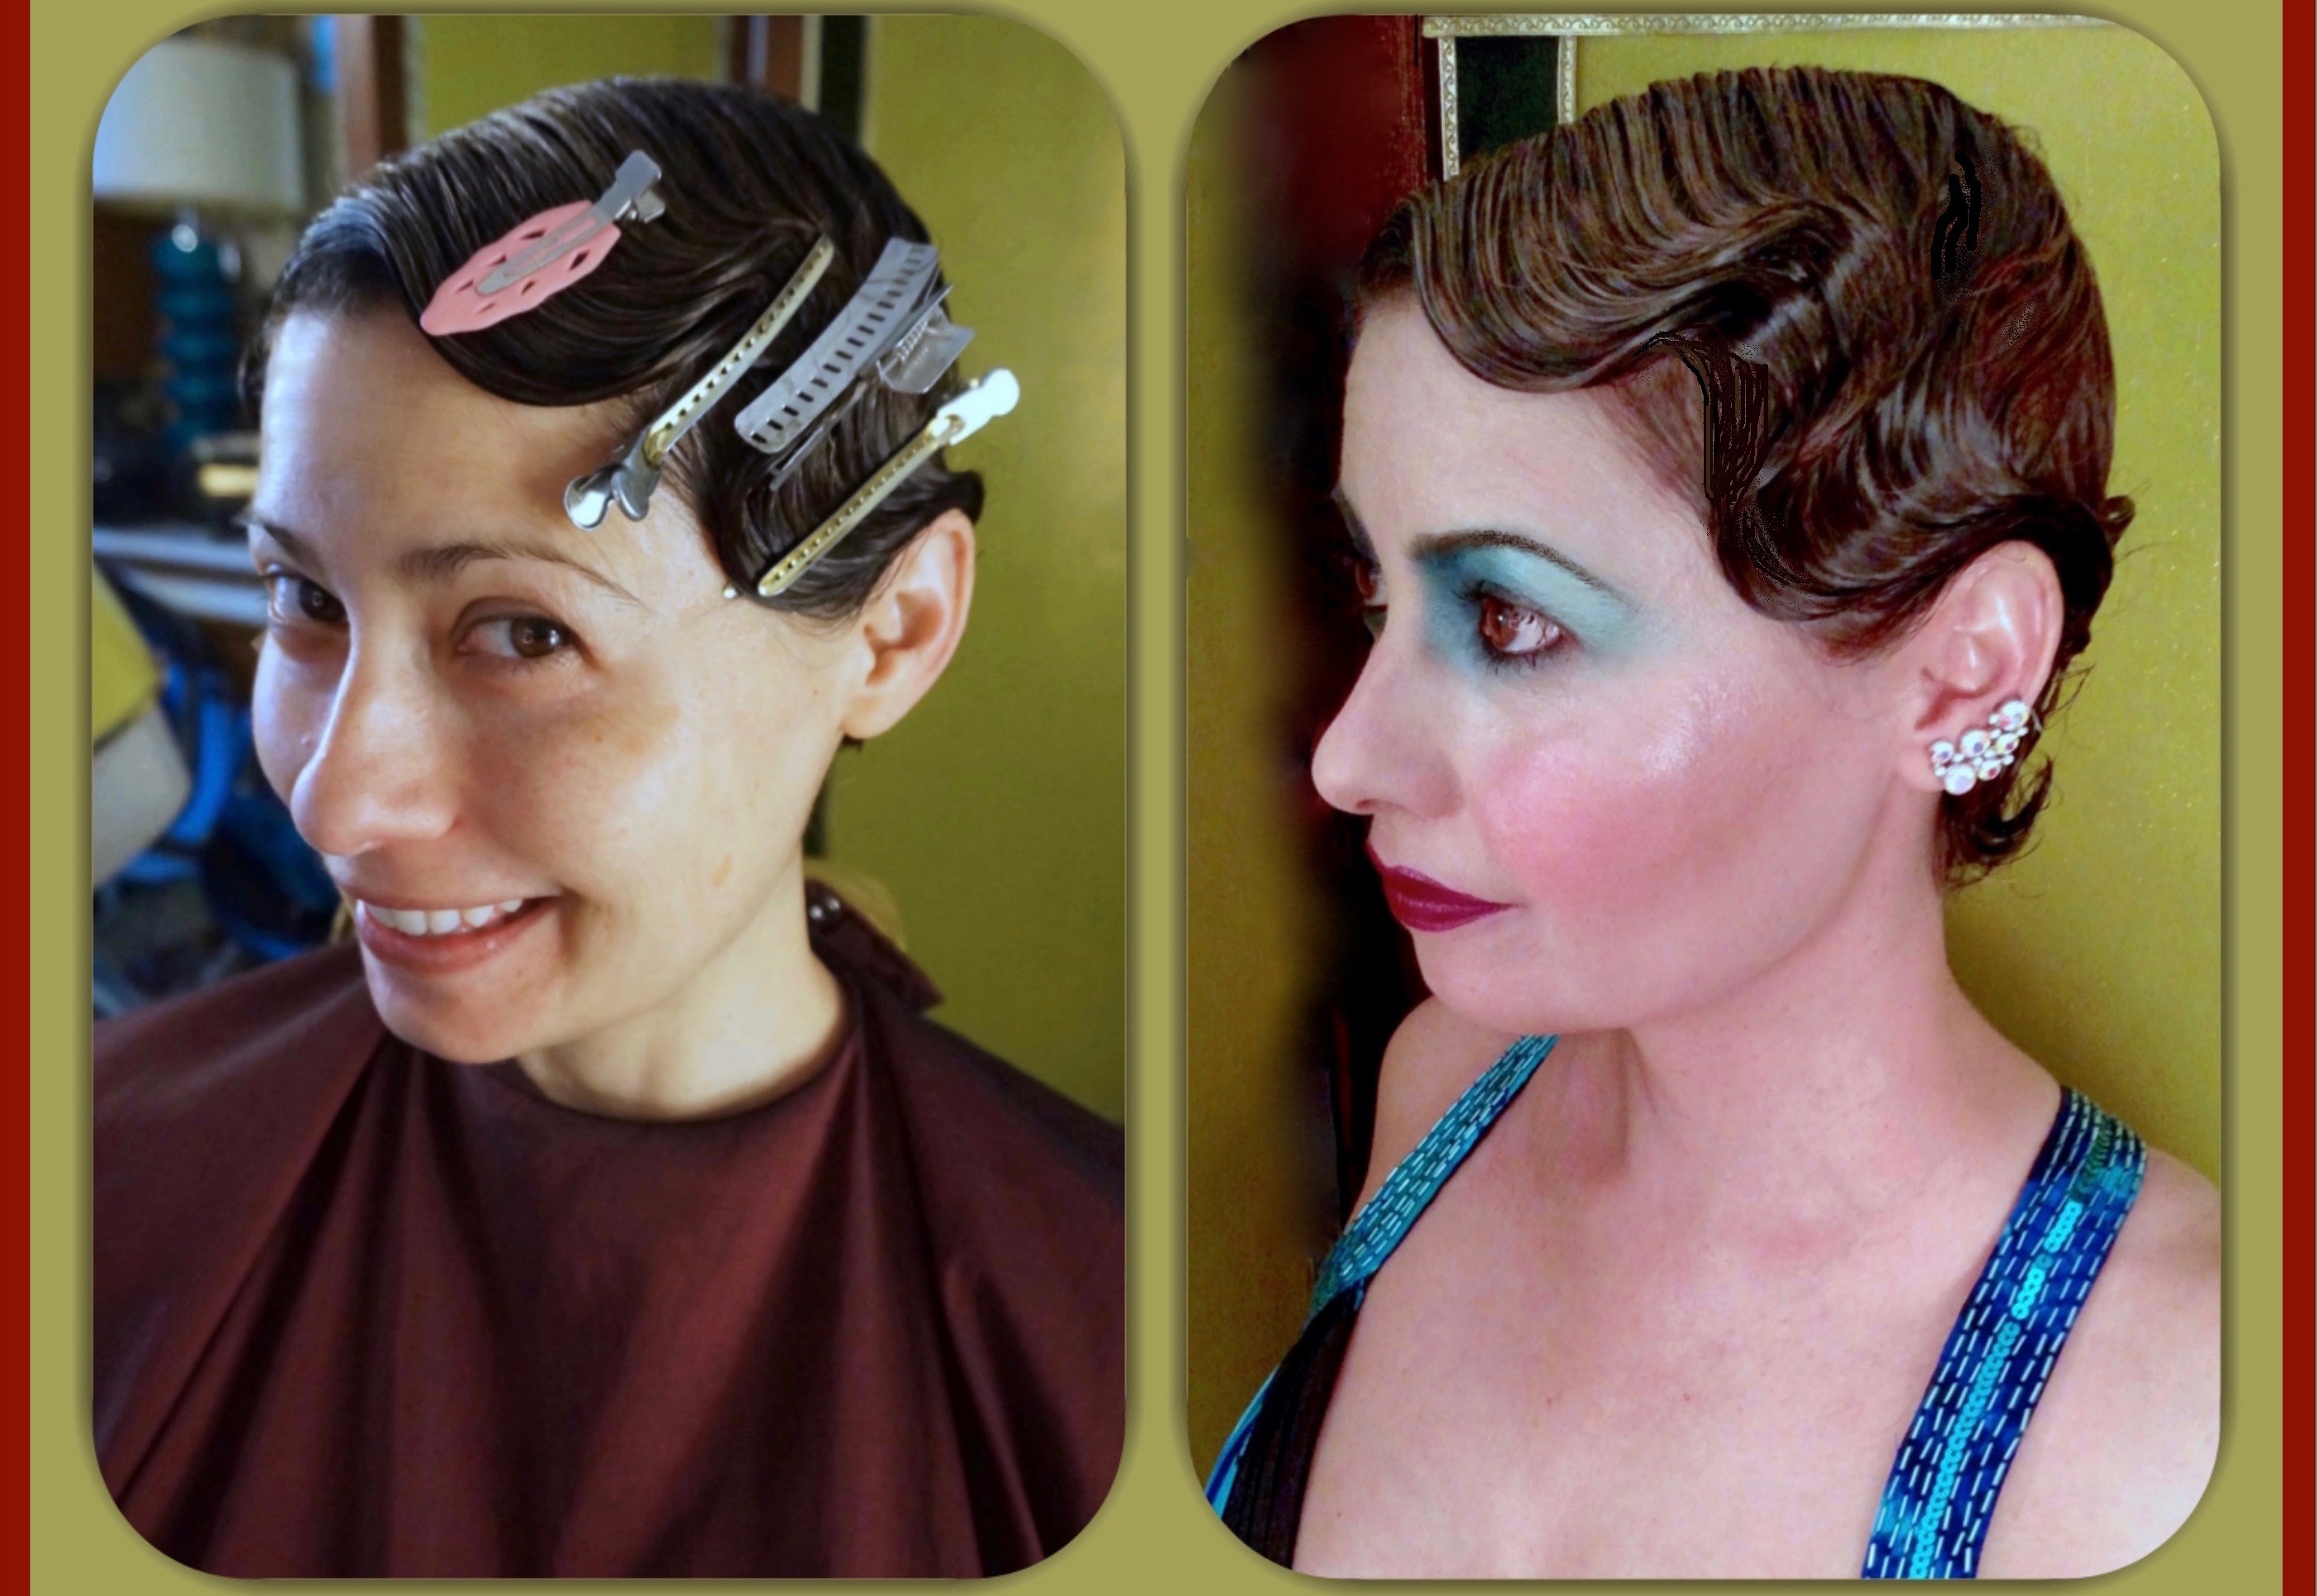 Retro hairstyling & makeup